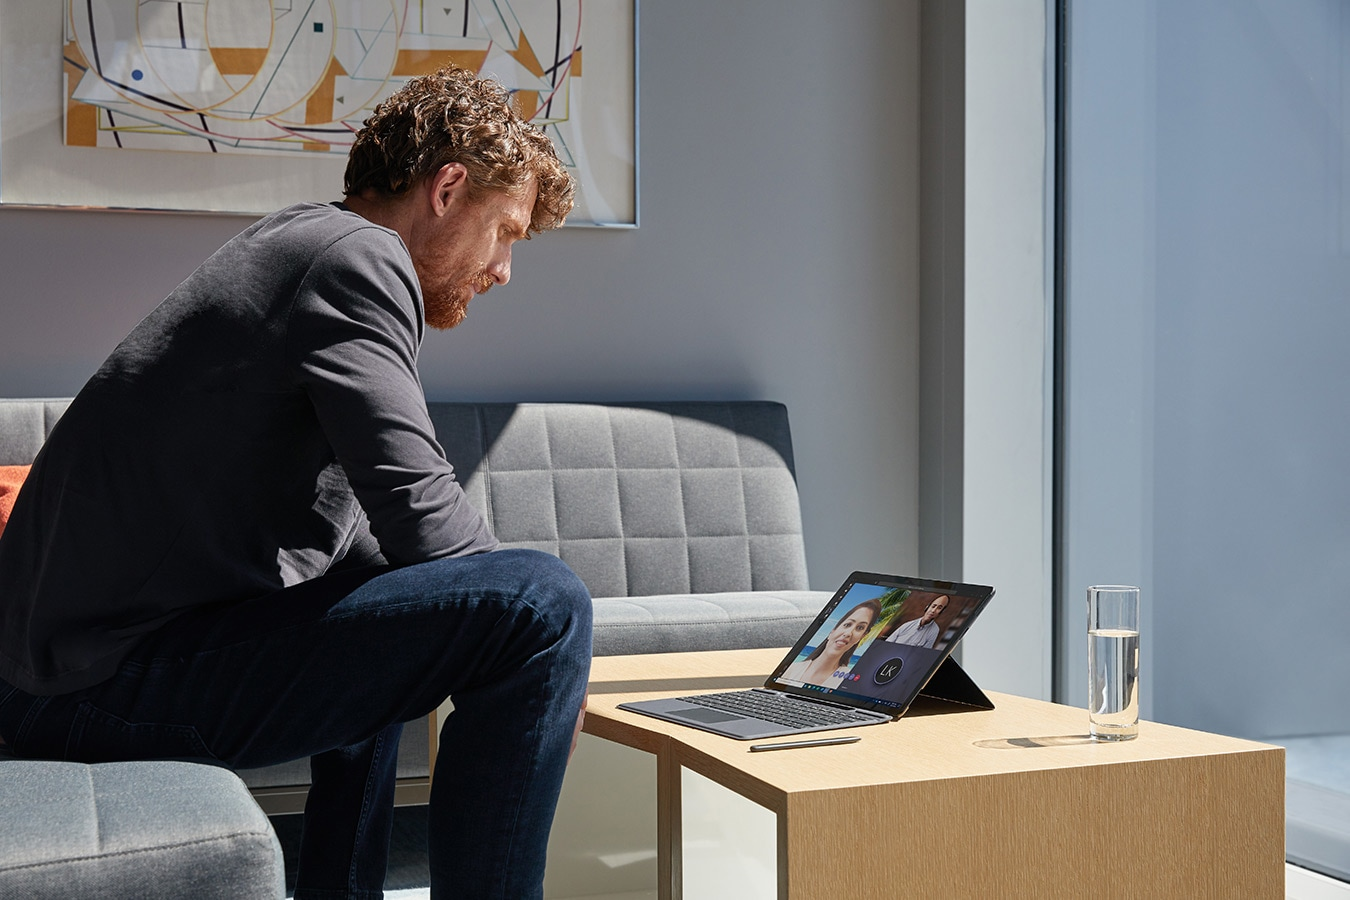 A person works on Surface Pro X while sitting on a sofa